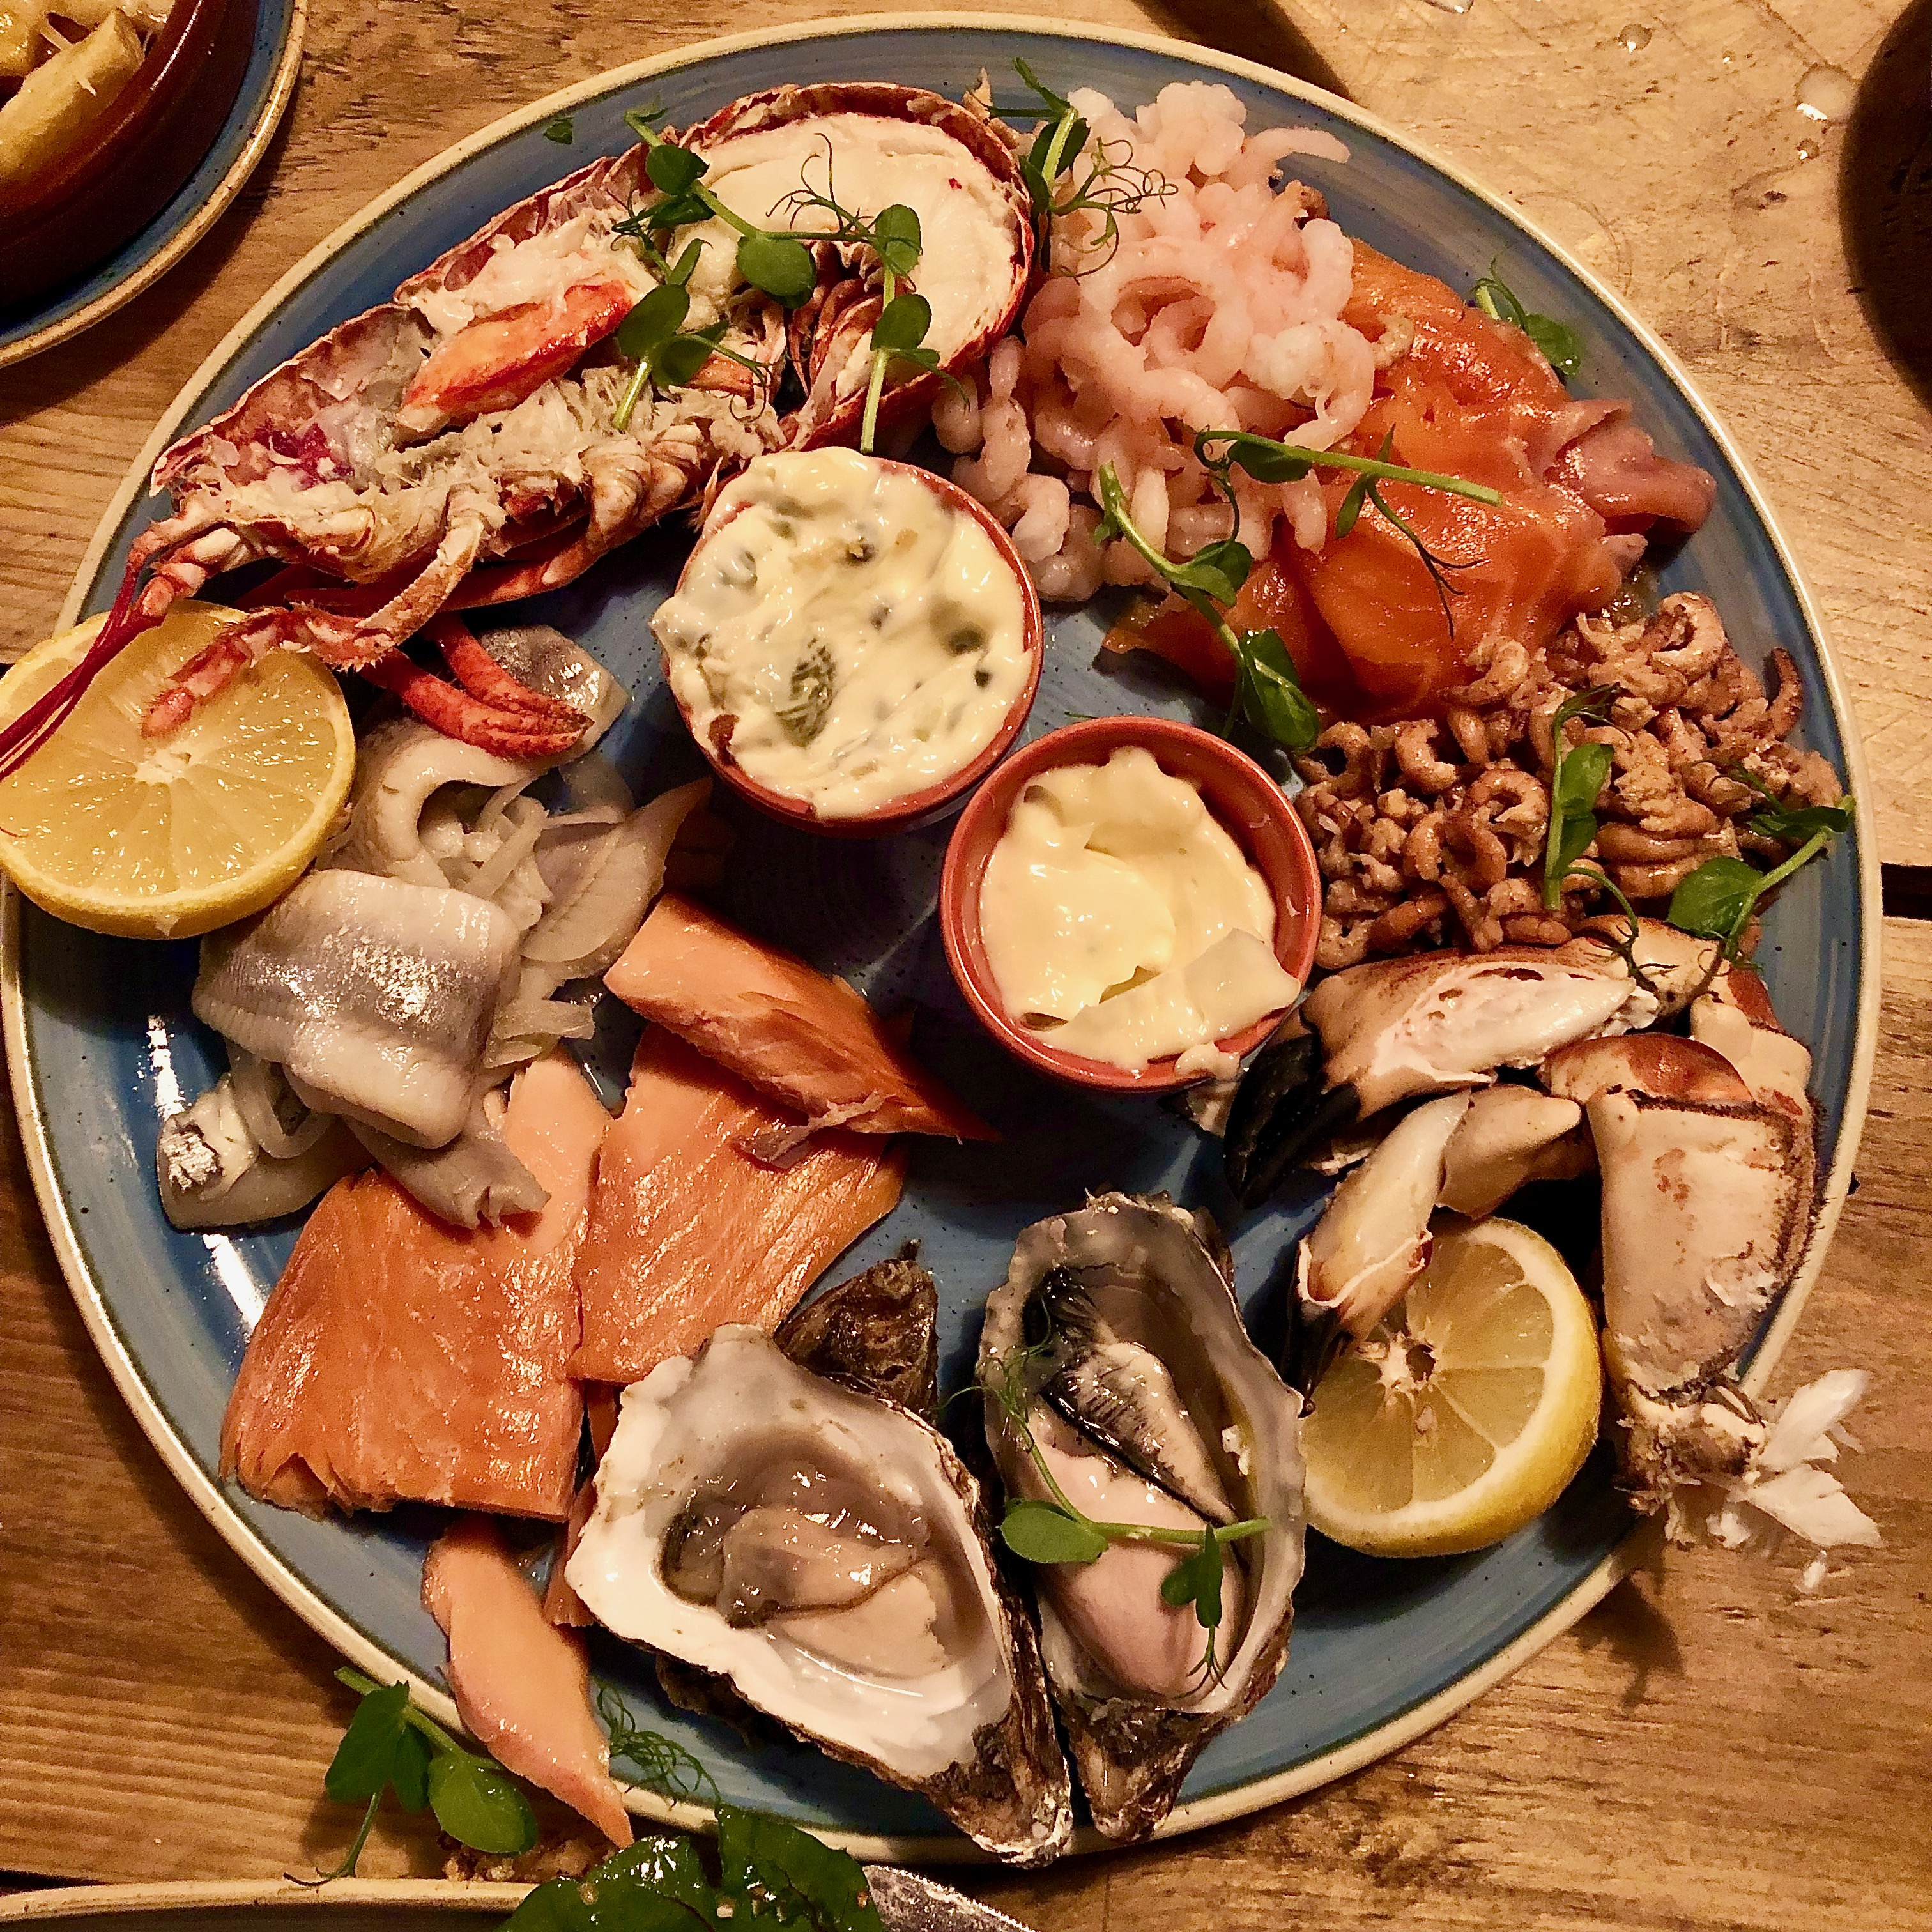 Seafood Platter Bamburgh at The Potted Lobster